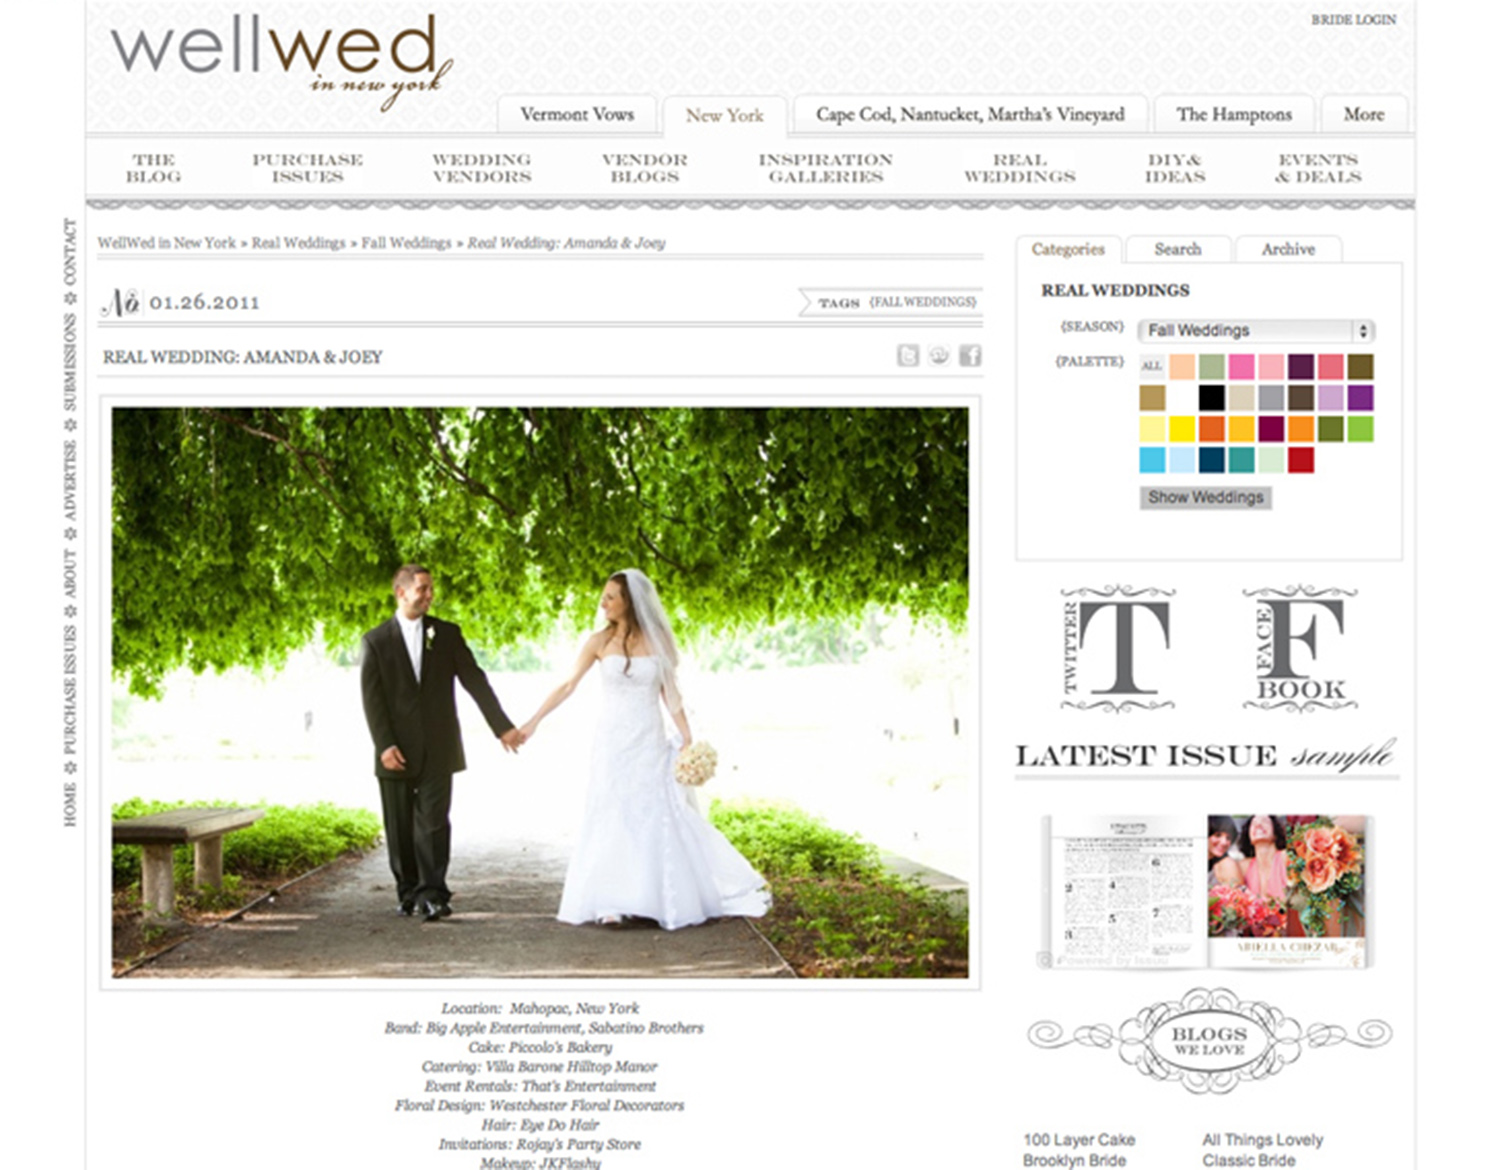 wedding-wellwed-ny-feature-slehberger.jpg